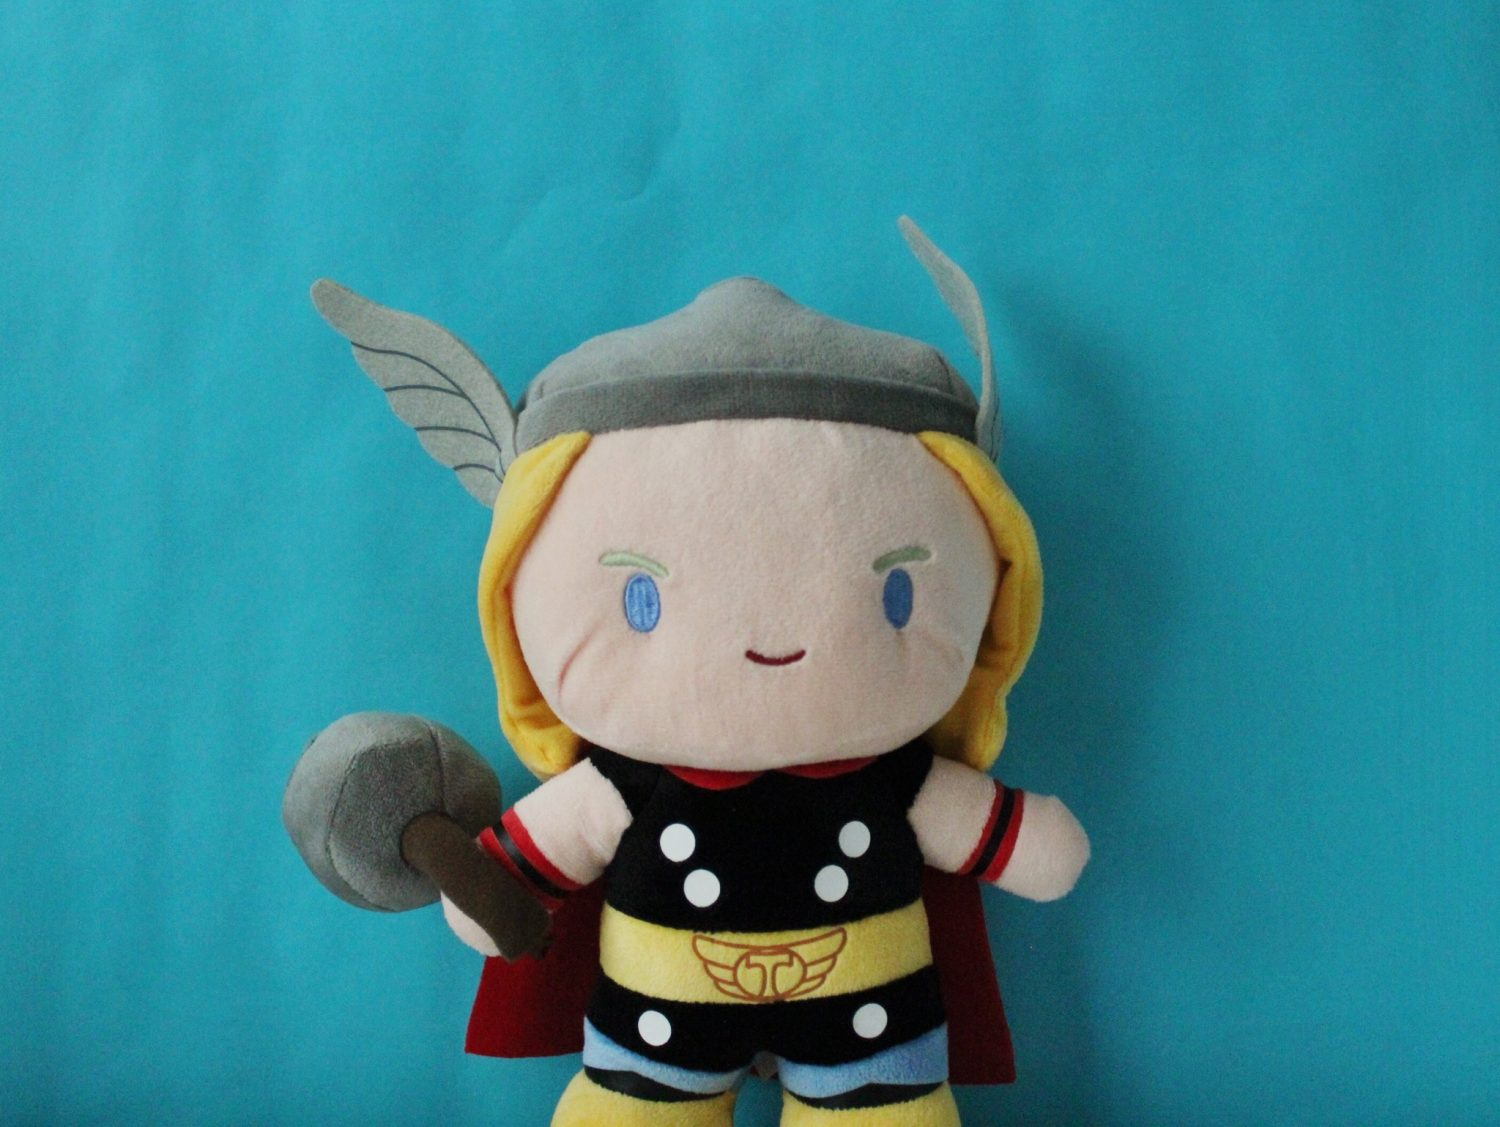 Marvel Thor Plush